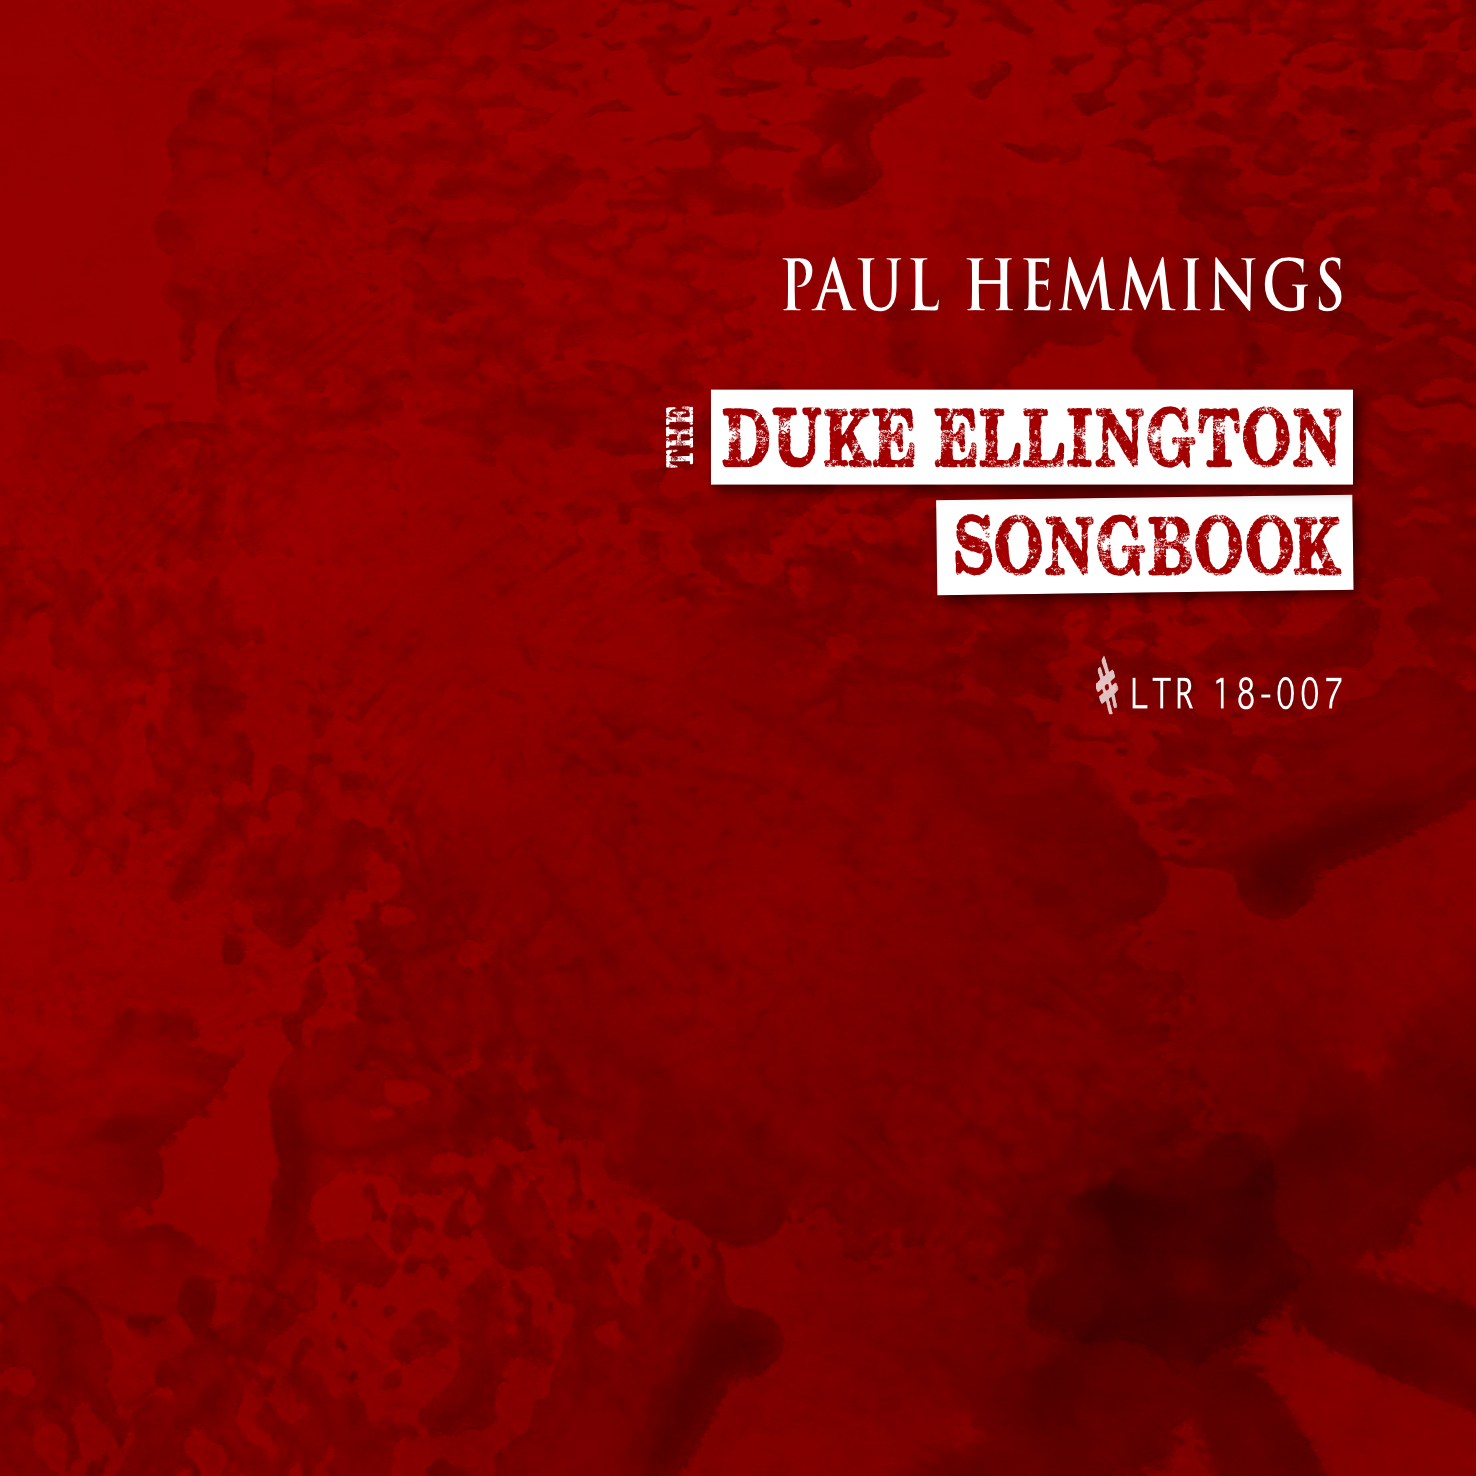 DUKE ELLINGTON SONGBOOK cd cover .jpg